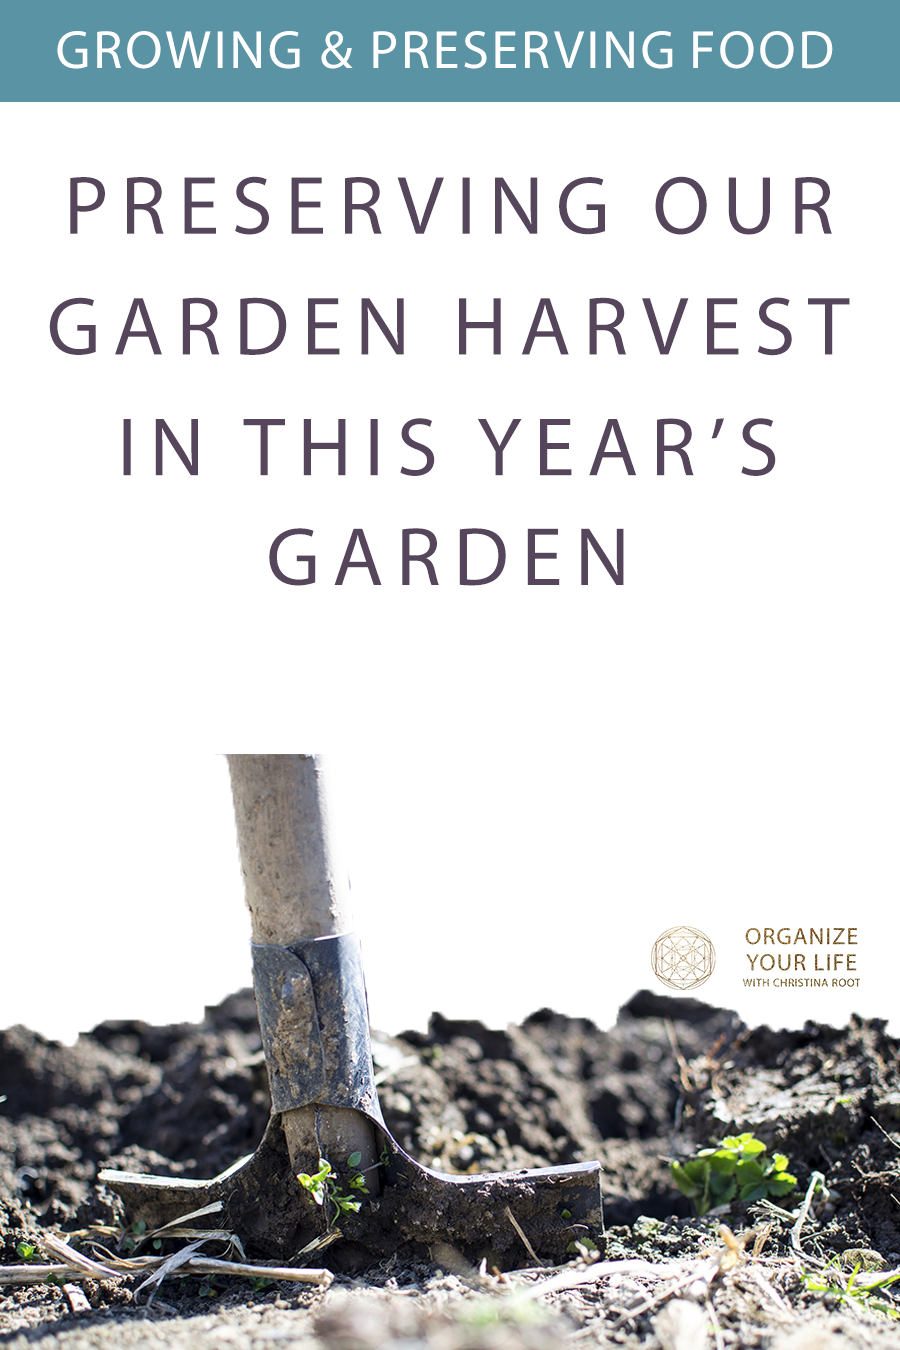 How we're planning to preserve our garden harvest in 2020